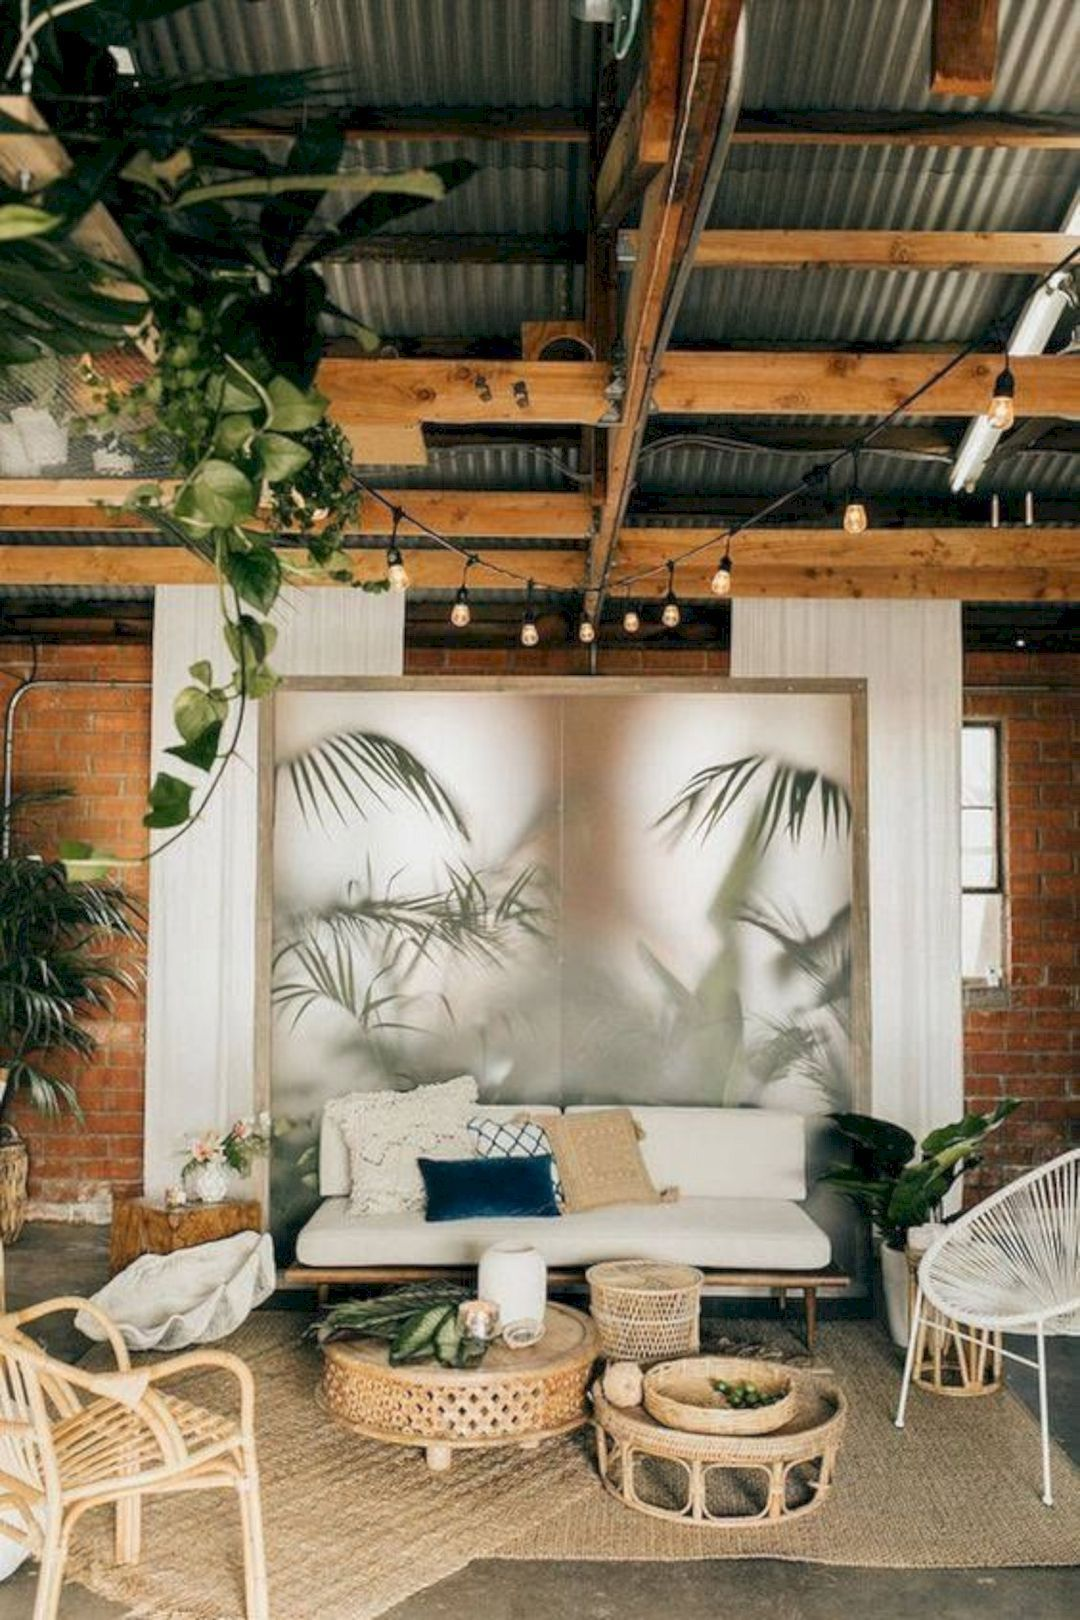 Photo of 15 Tropical Room Decoration Ideas to Freshen Up Your Home